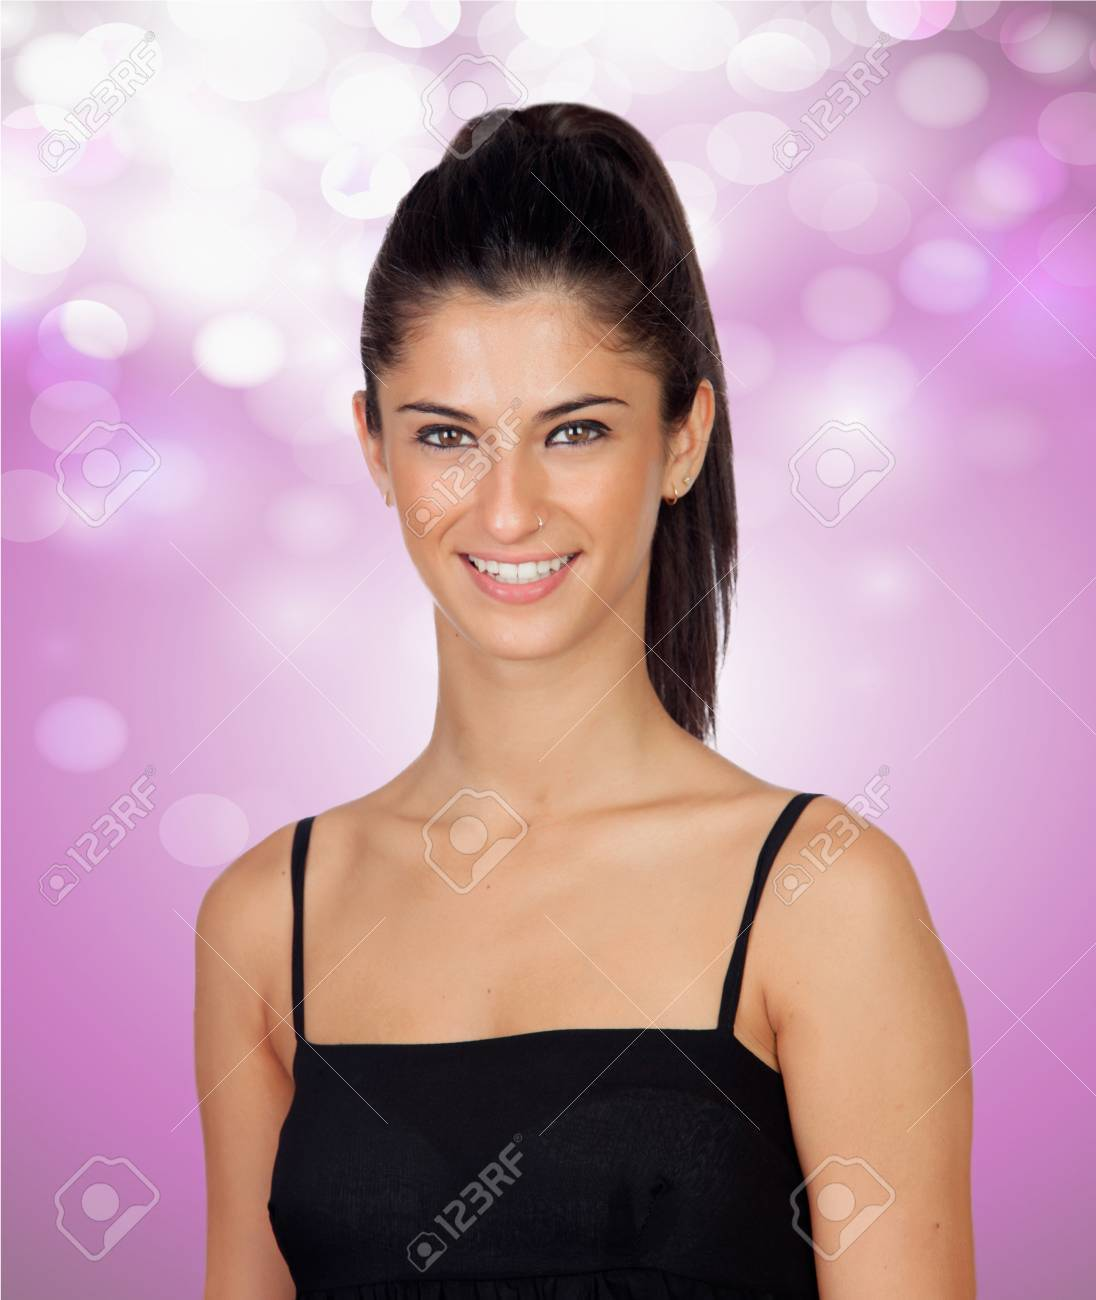 Attractive brunette girl with a pierced nose on a pink and bright background Stock Photo - 20310285